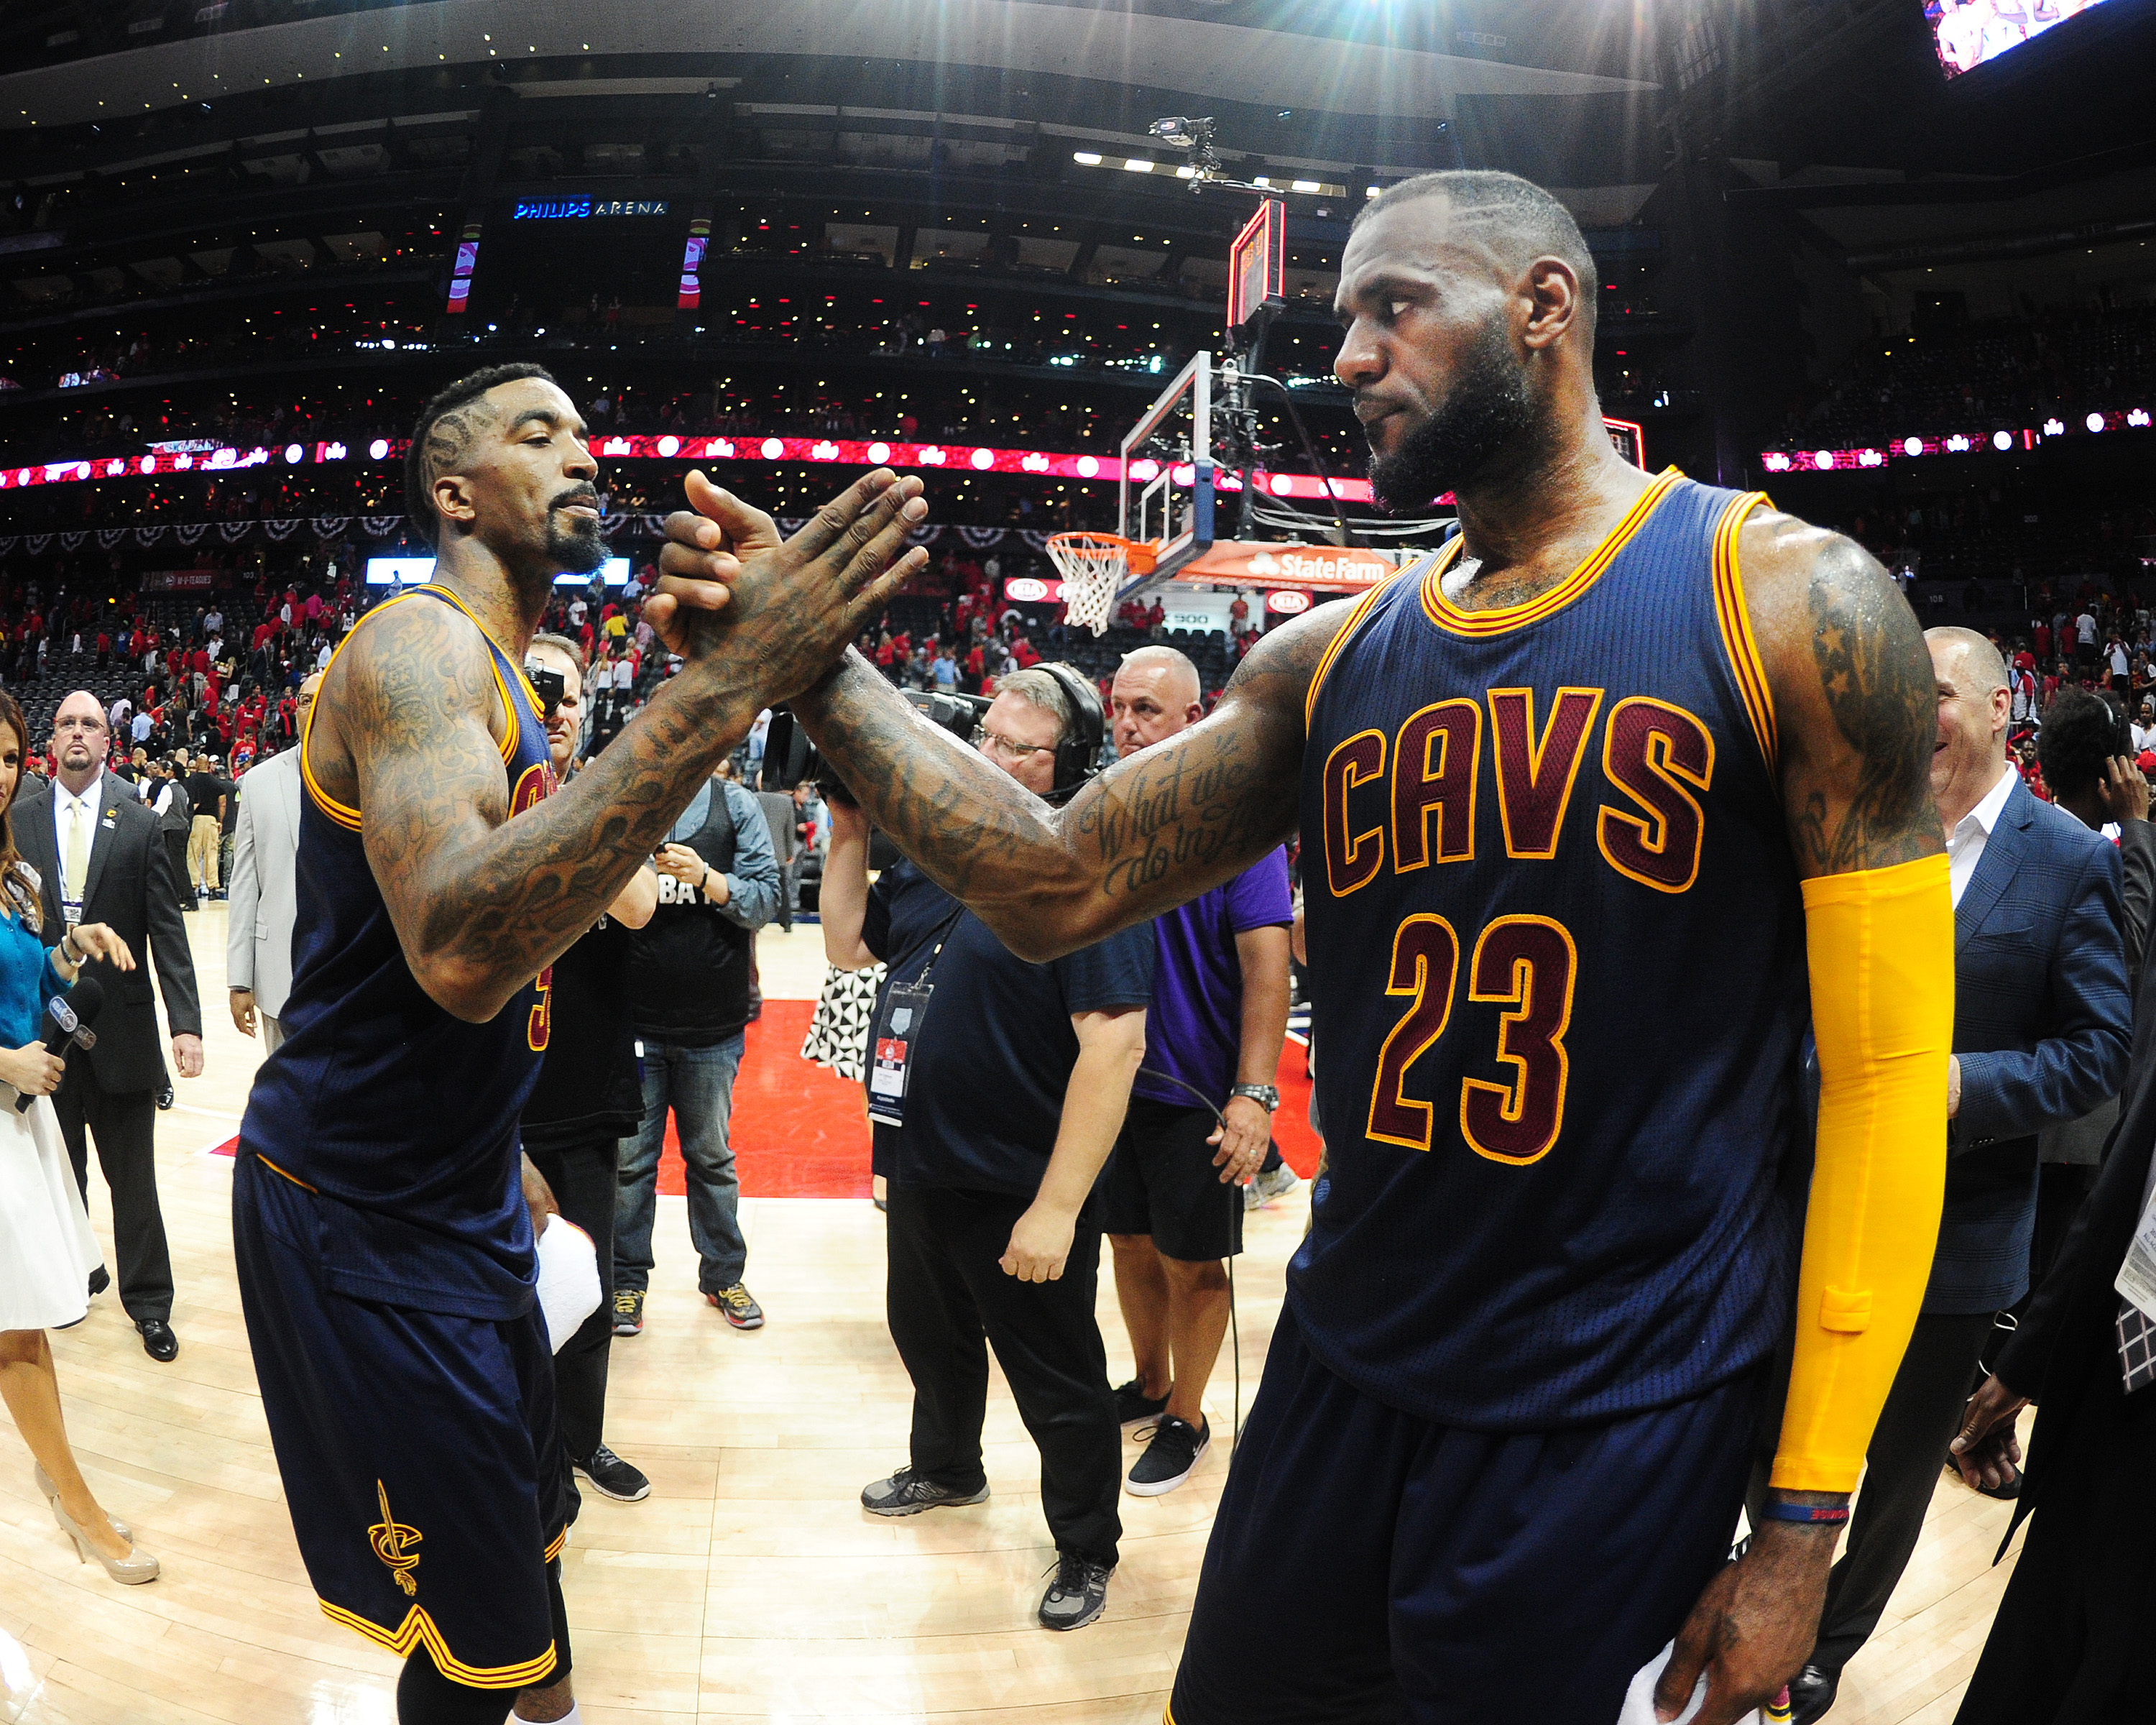 ATLANTA, GA - MAY 20: J.R. Smith #5 high fives LeBron James #23 of the Cleveland Cavaliers after the win for Game One of the Eastern Conference Finals during the NBA Playoffs on May 20, 2015 at Philips Arena in Atlanta, Georgia.  (Photo by Scott Cunningha